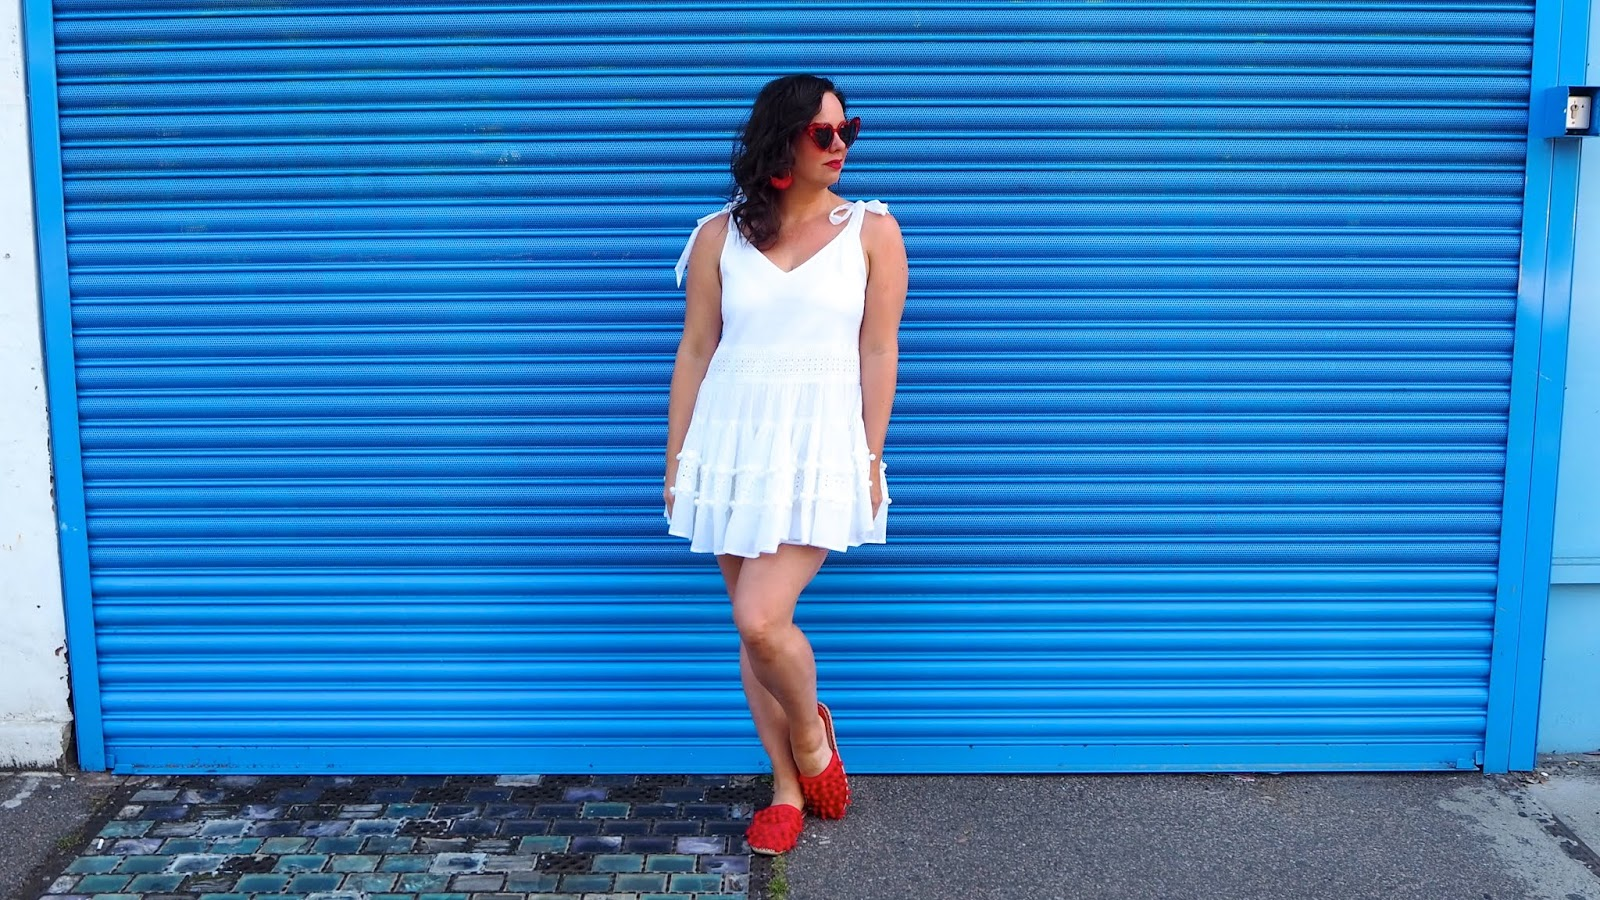 Red heart sunglasses, white dress and red mules